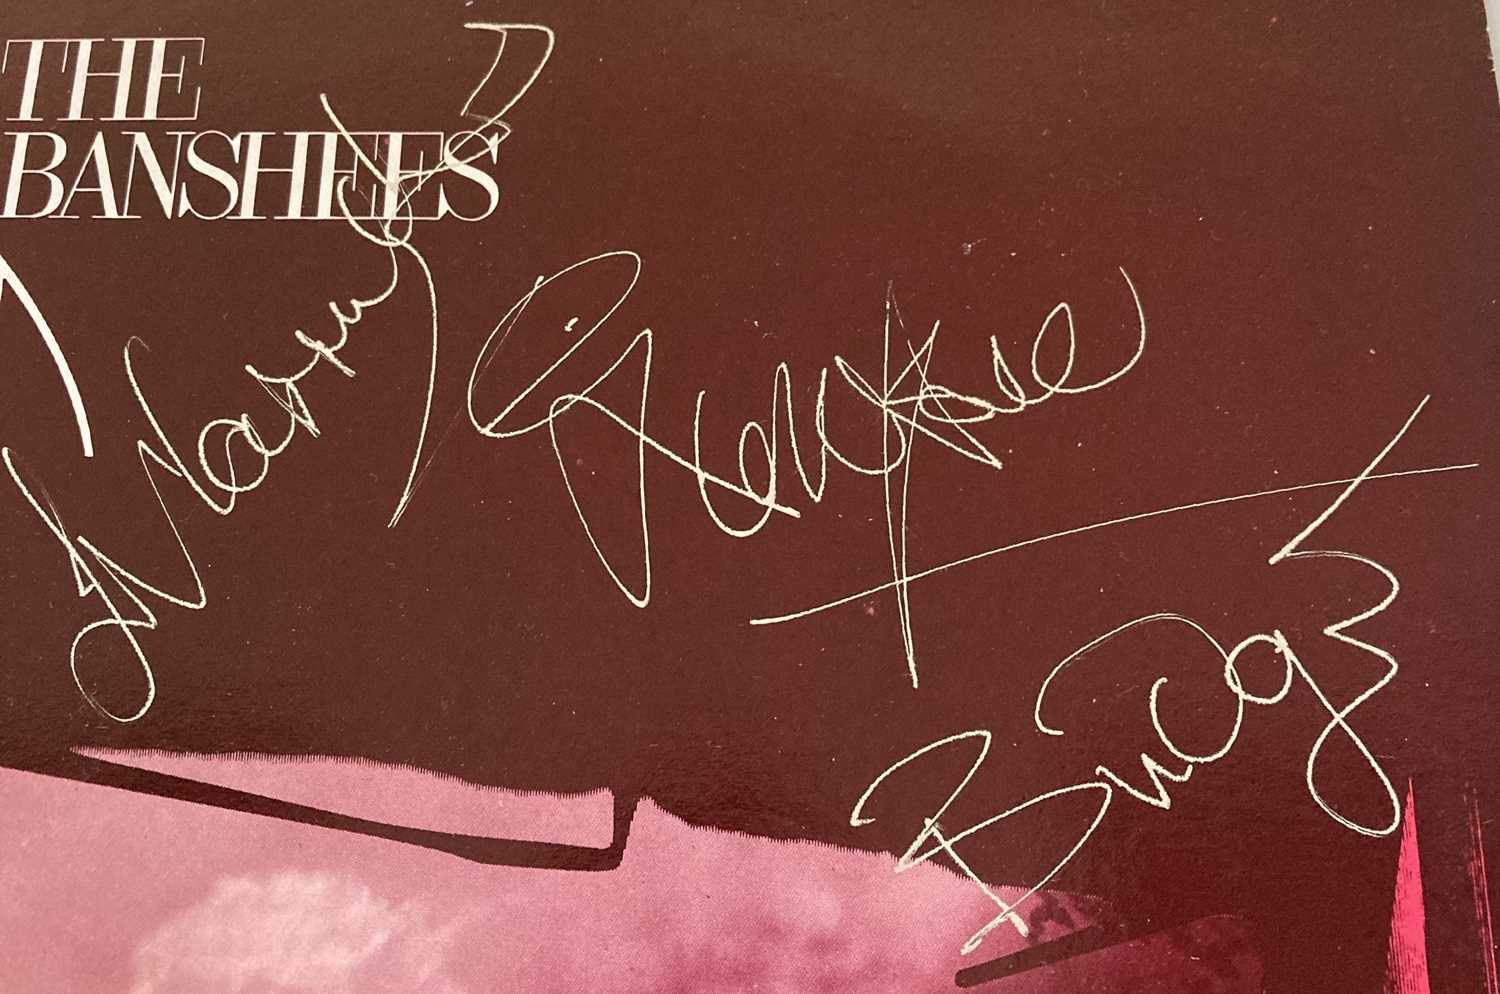 SIOUXSIE AND THE BANSHEES SIGNED LP. - Image 5 of 5